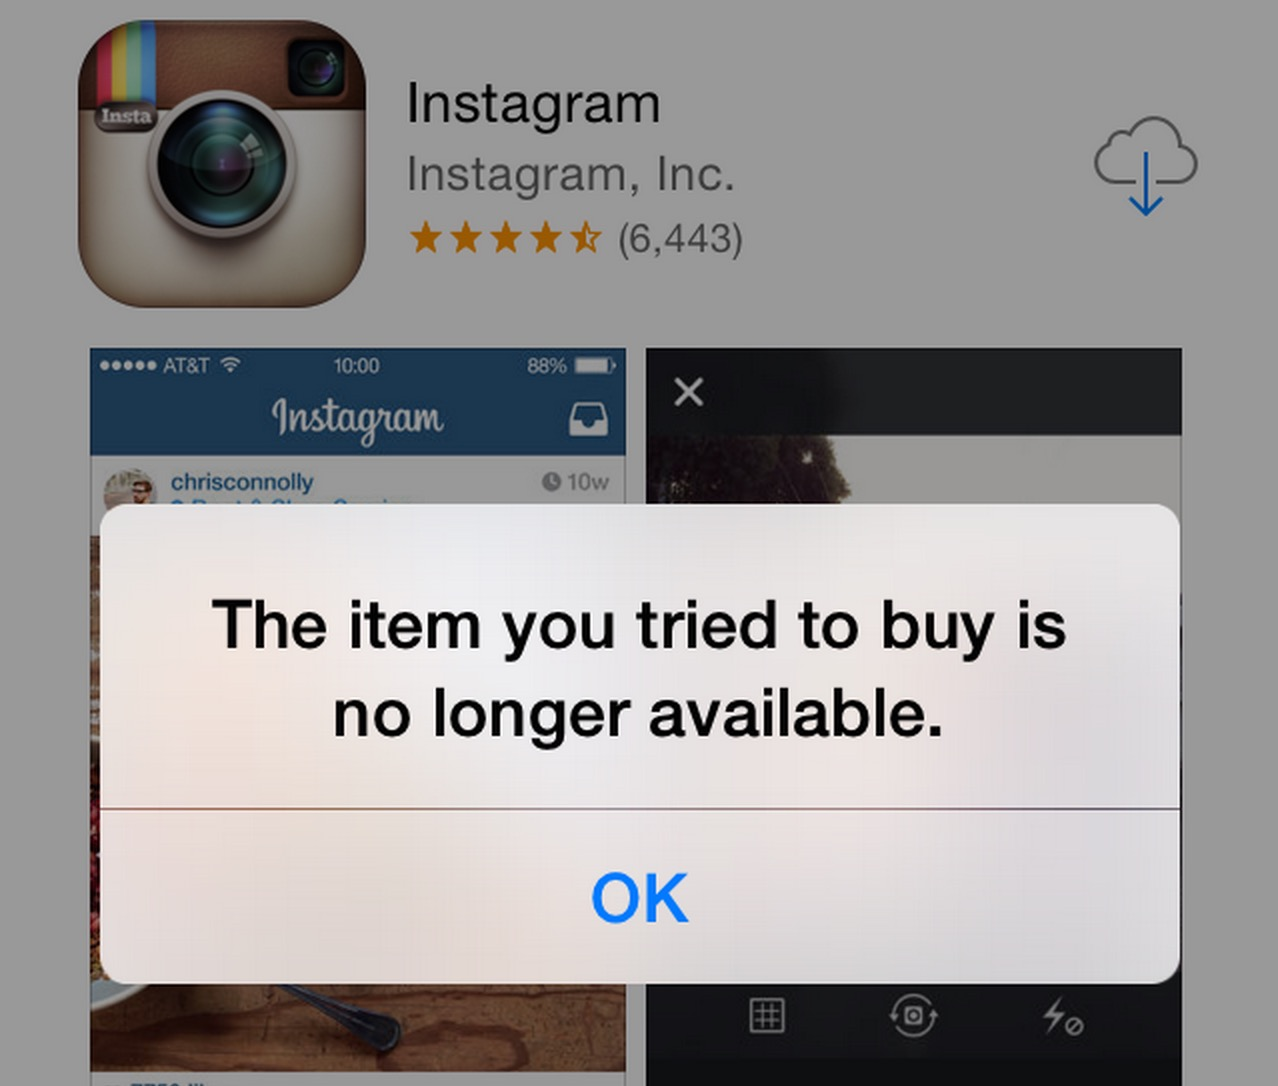 the item you tried to buy is no longer available